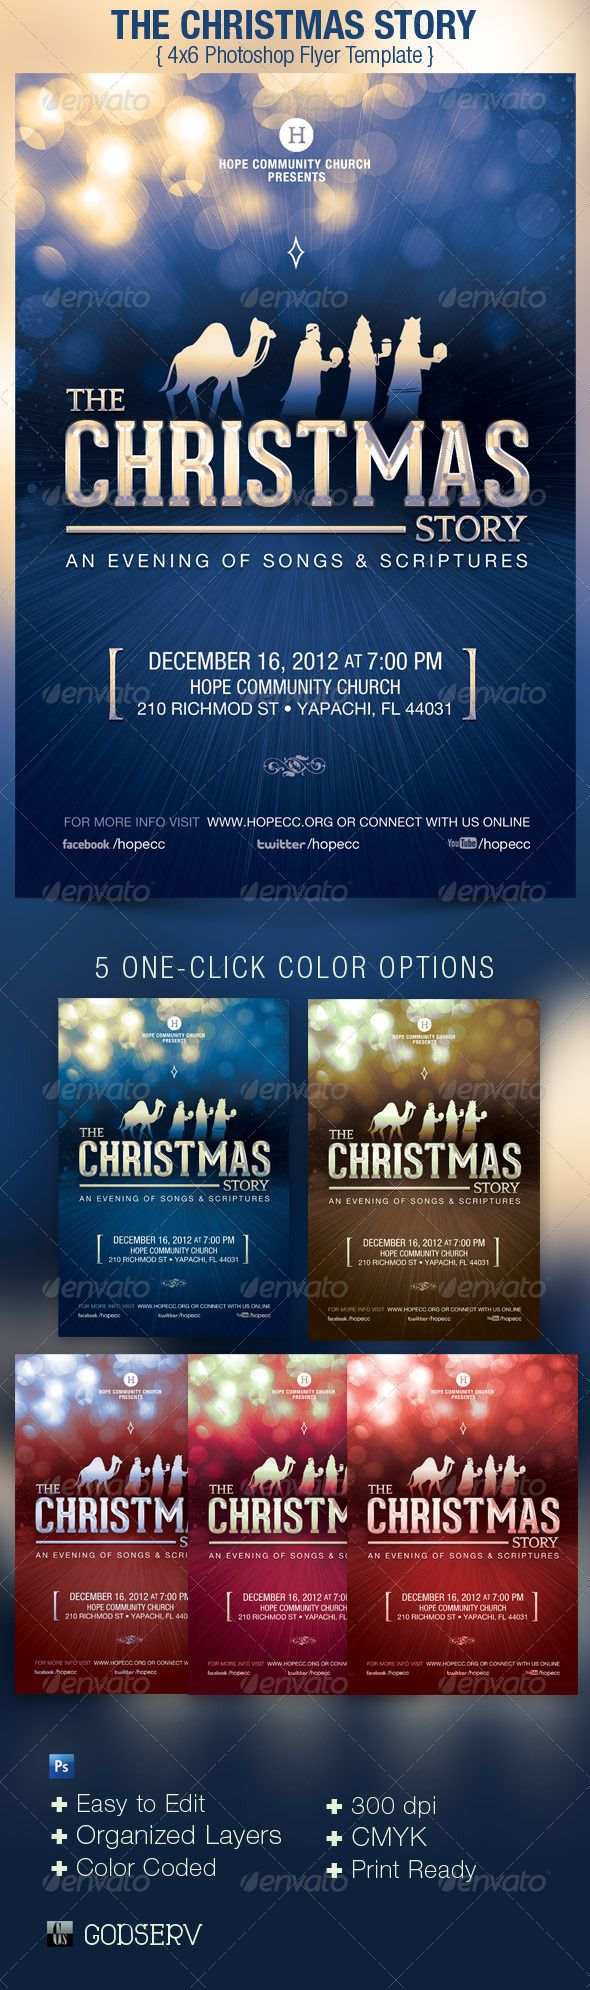 best images about church flyers party flyer christmas story church flyer poster template